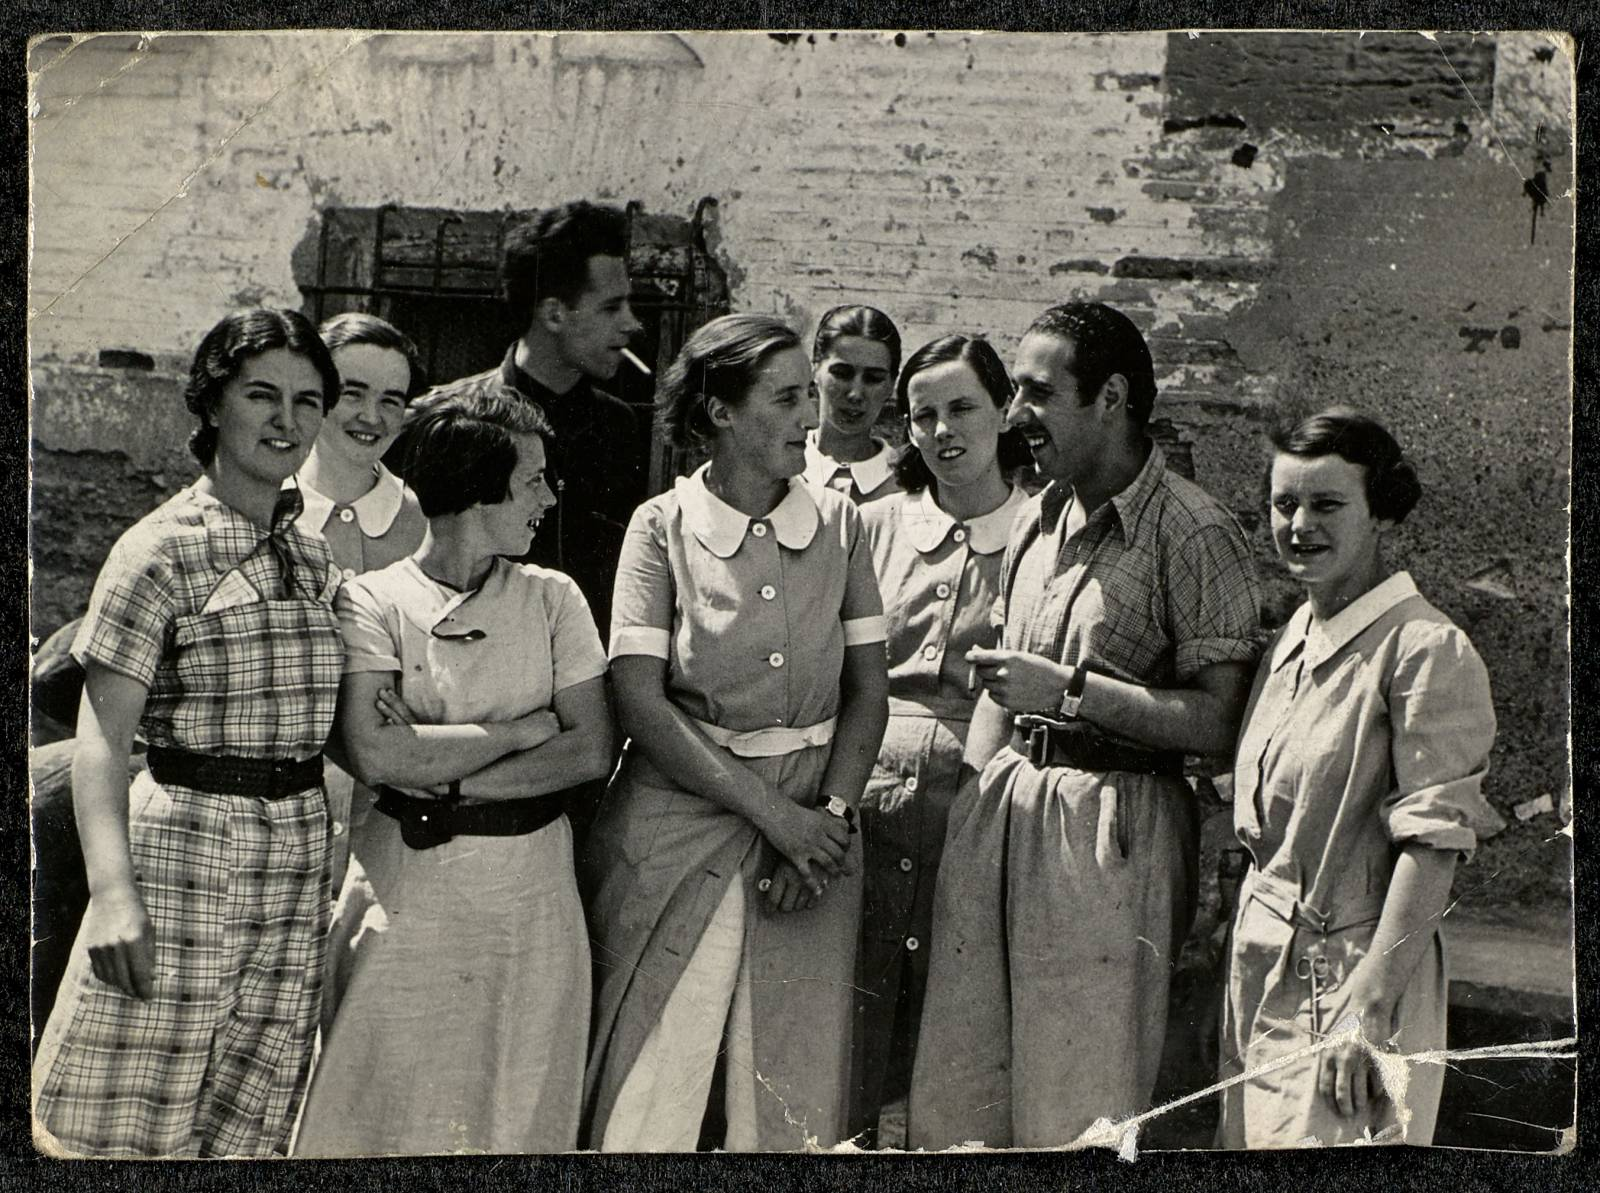 Nurses and doctor, Aragon Front, 1937